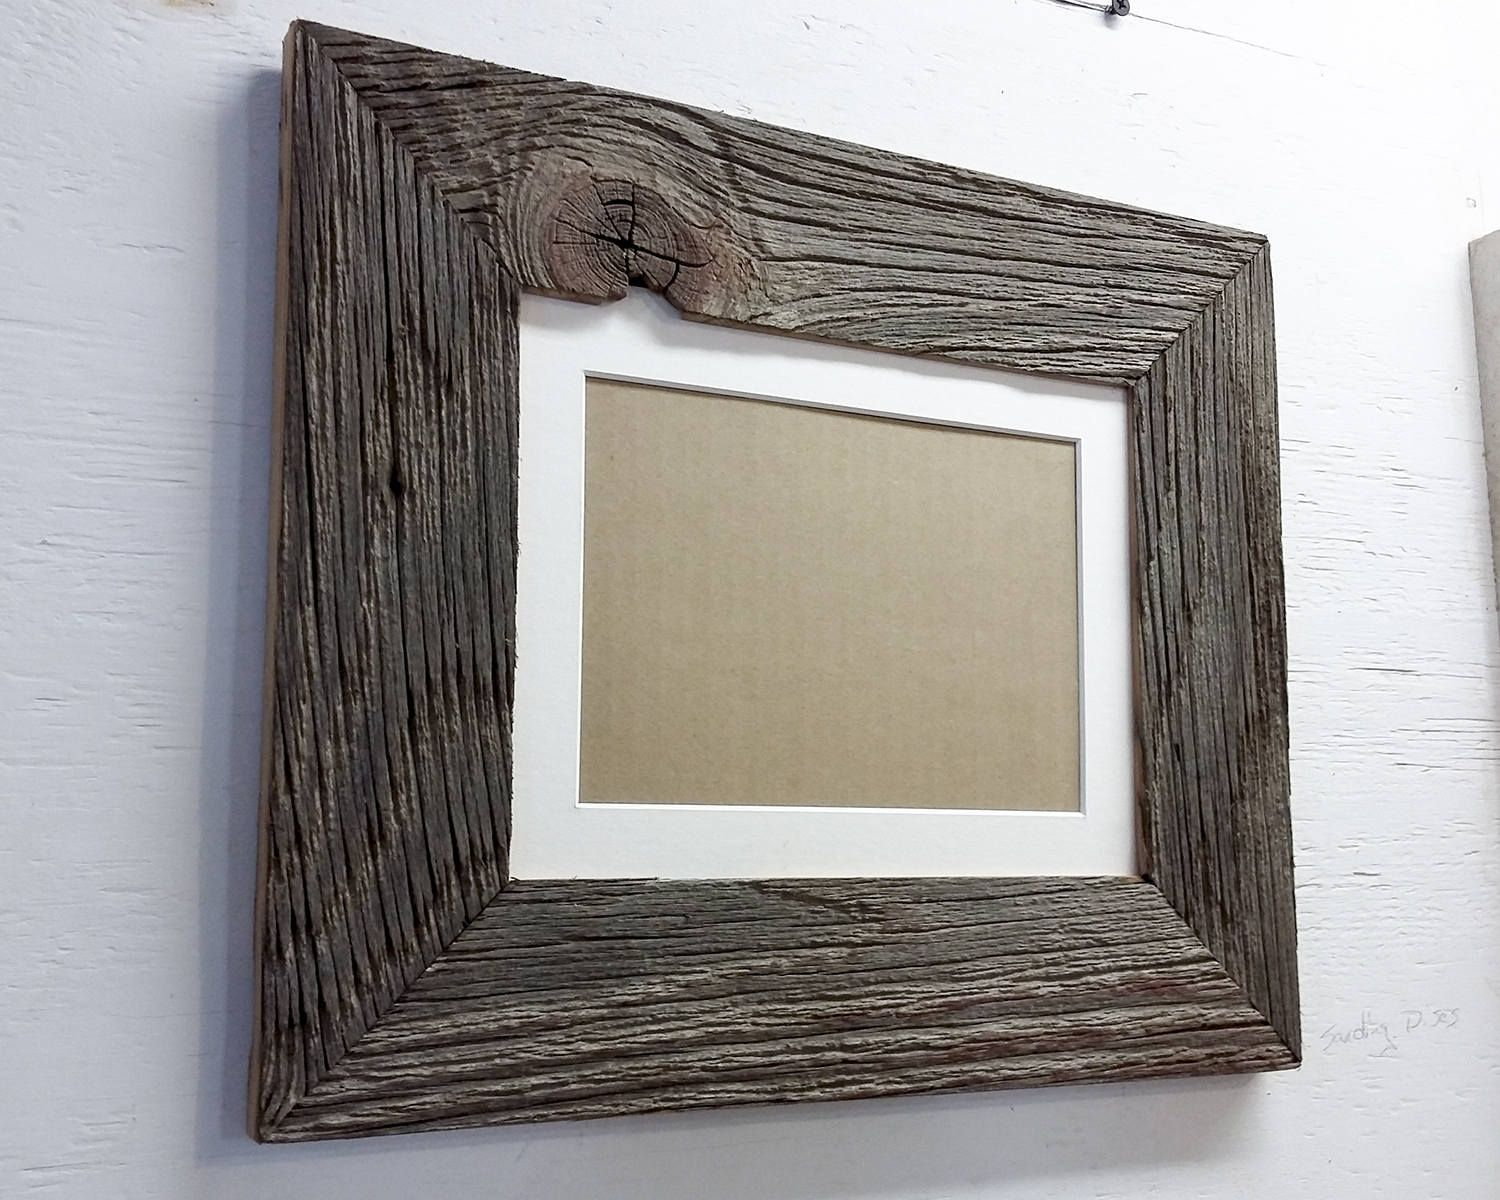 Authentic Barn Wood Frame 8 X 10 Inch With White Matting To 5 Barn Wood Frames Barn Wood Farmhouse Frames